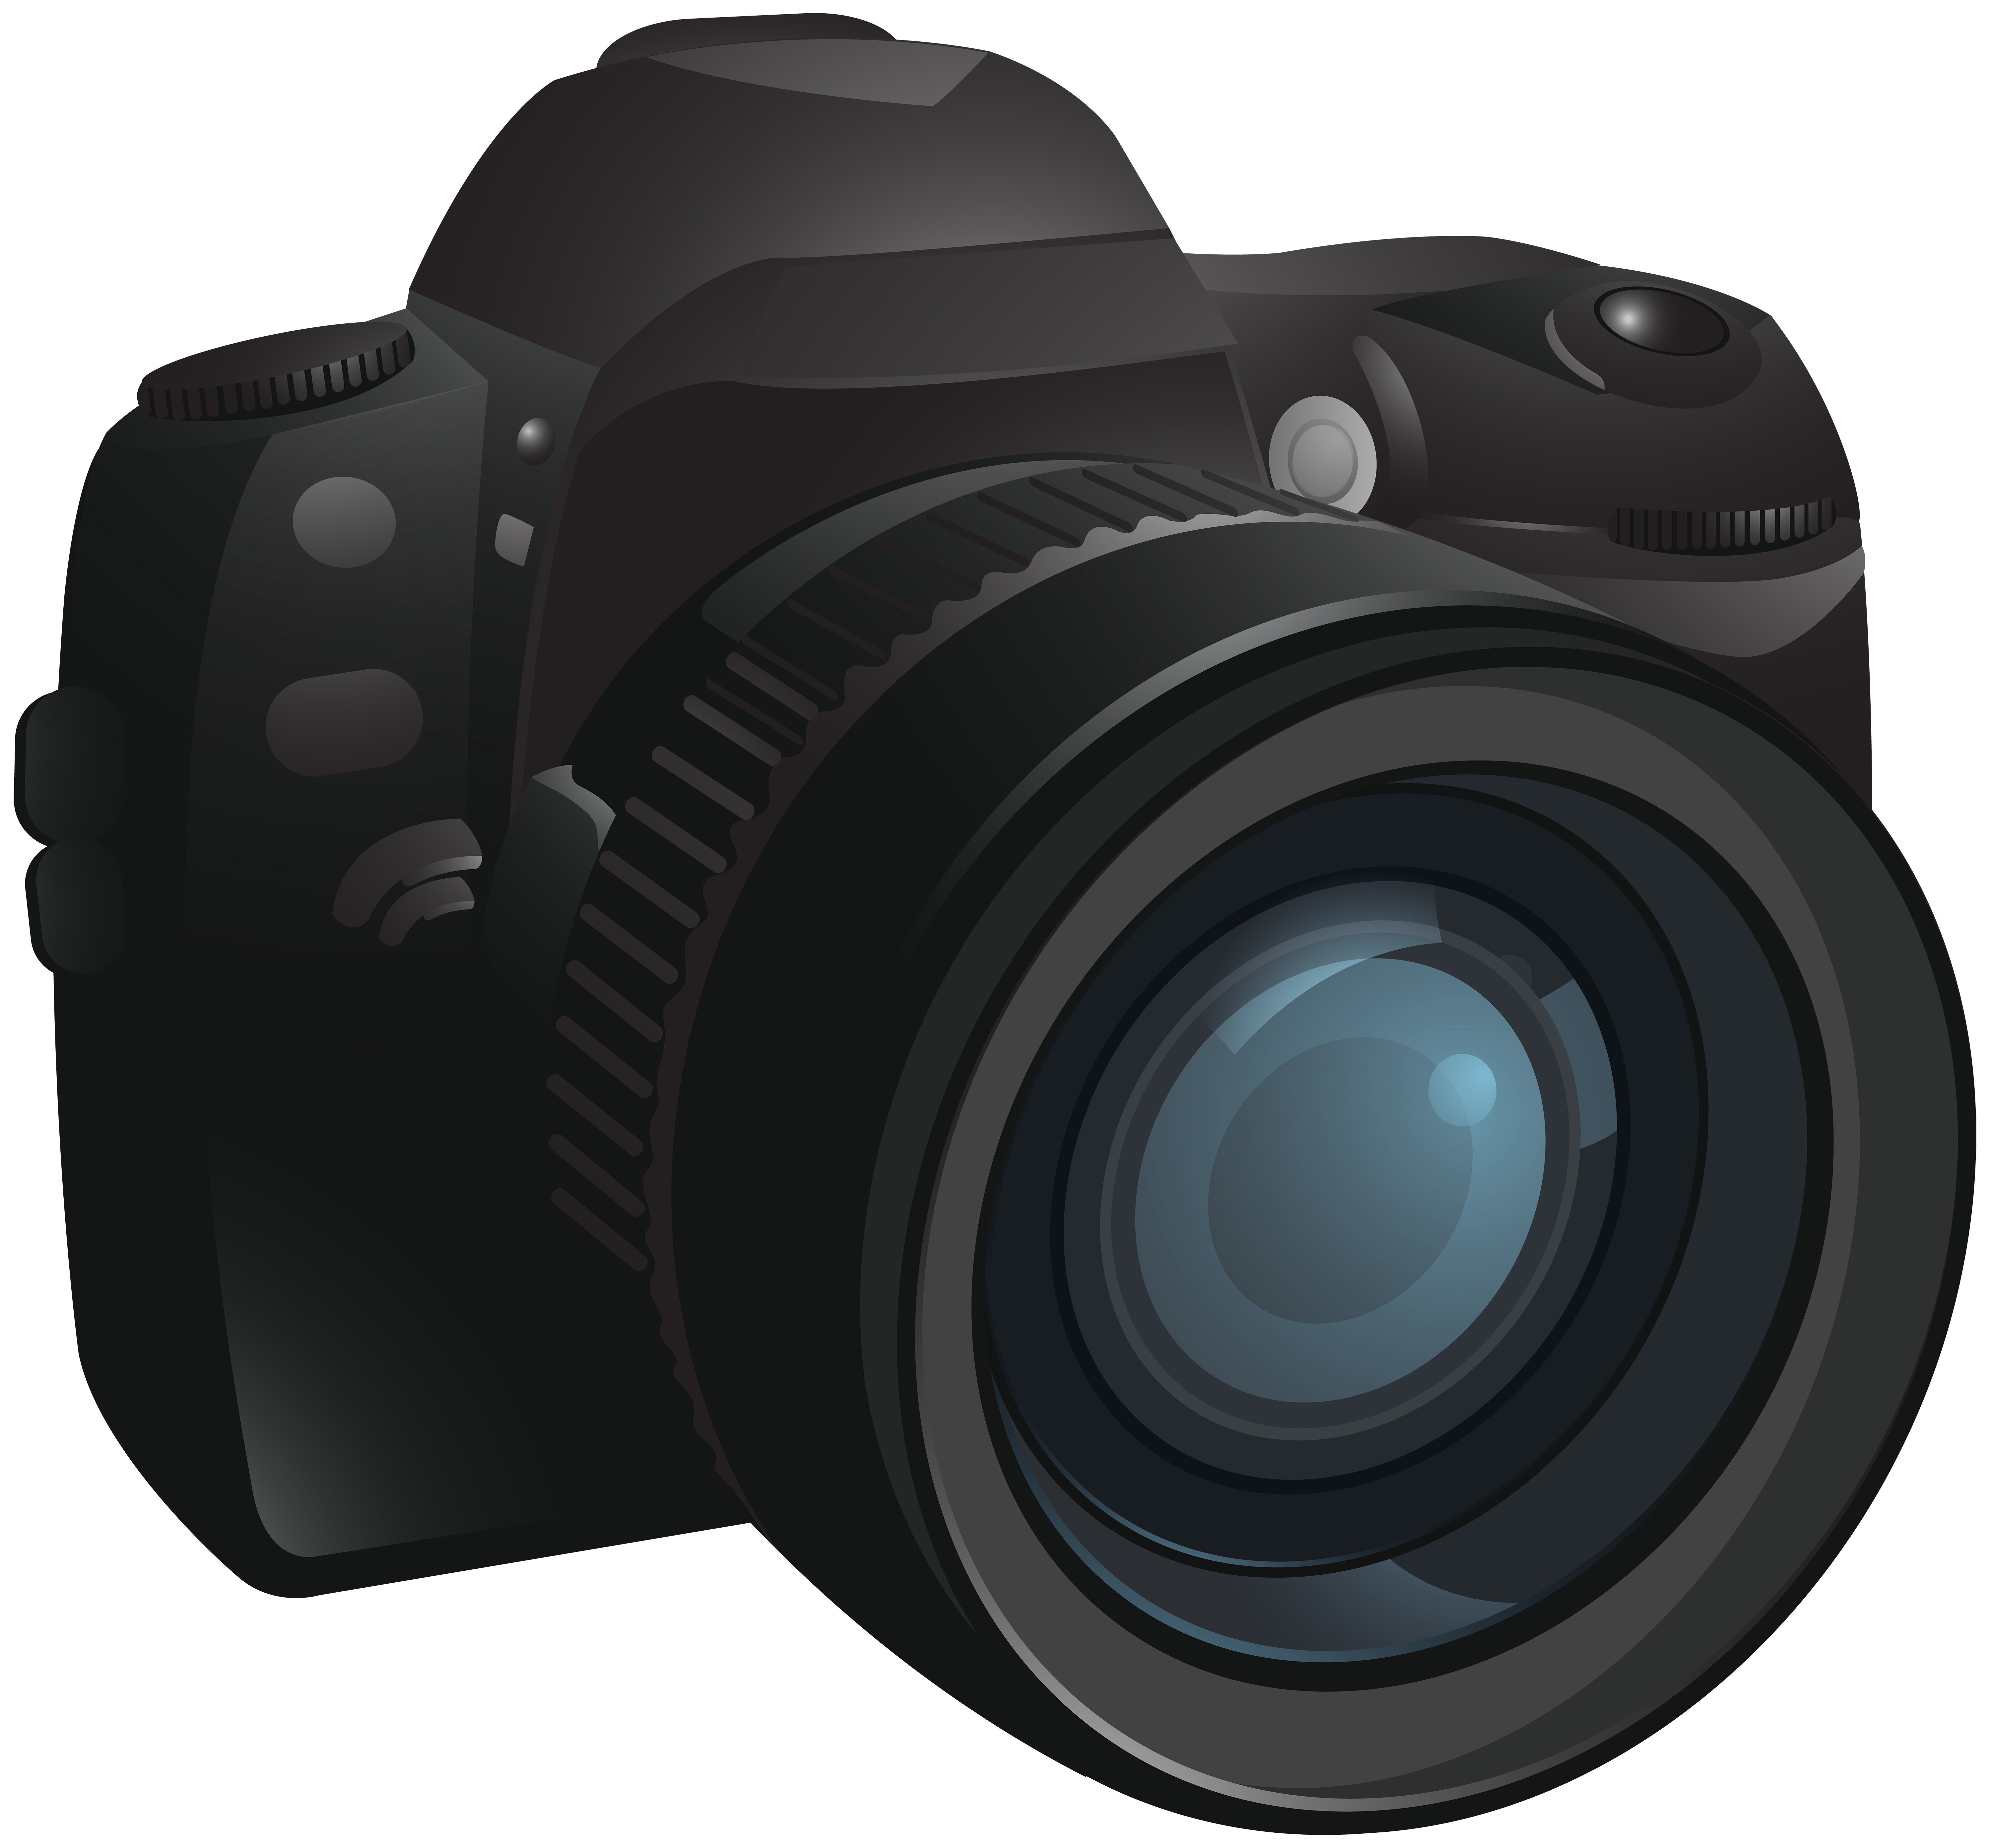 Clipart flowers camera. Transparent png image gallery